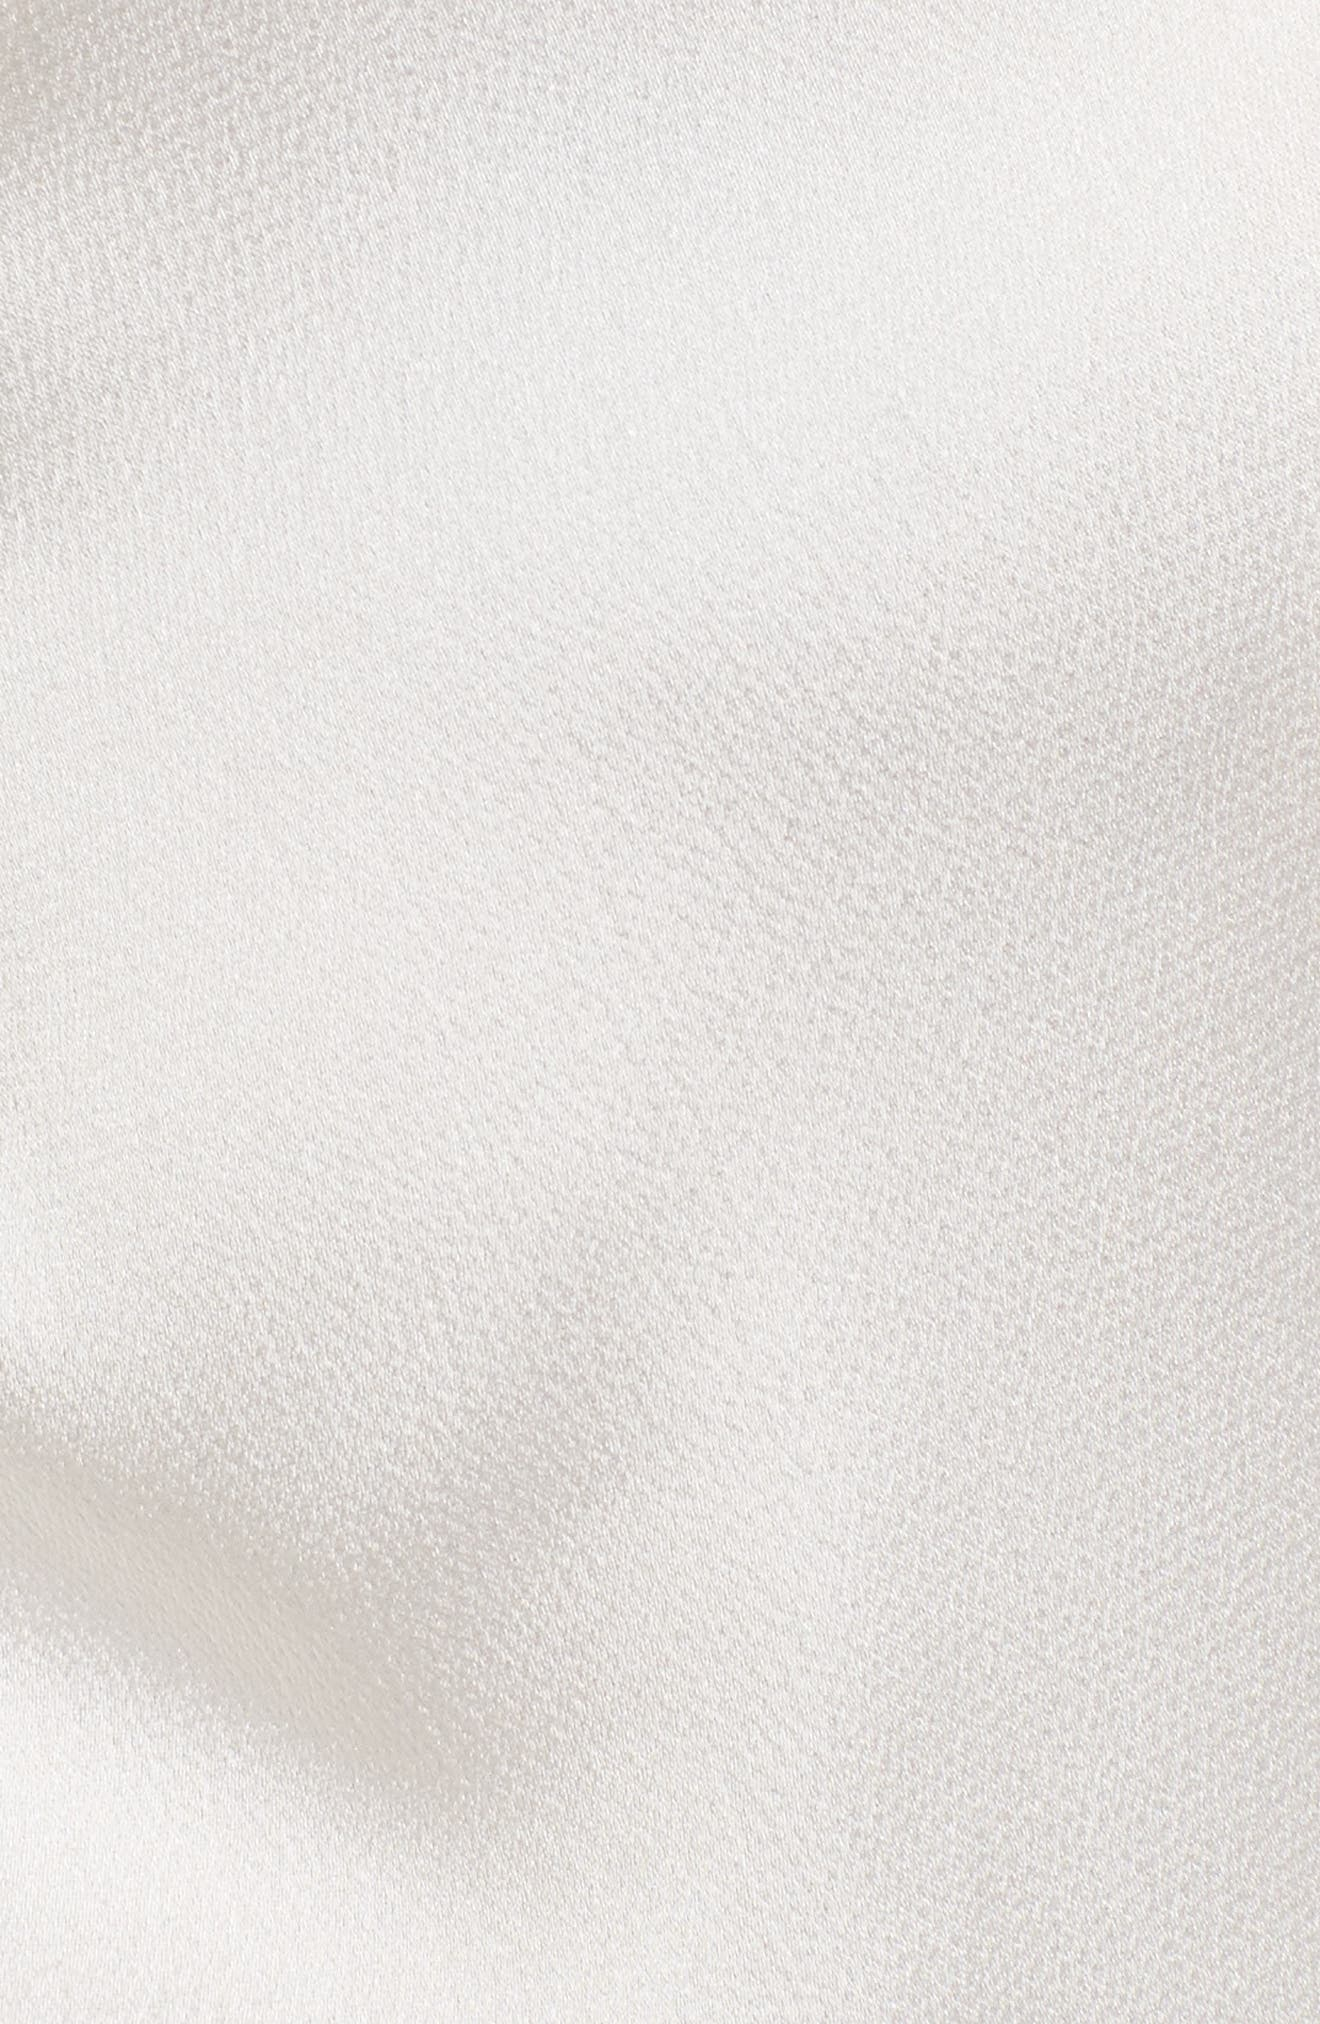 Knotted Hammered Satin Blouse,                             Alternate thumbnail 6, color,                             Ivory